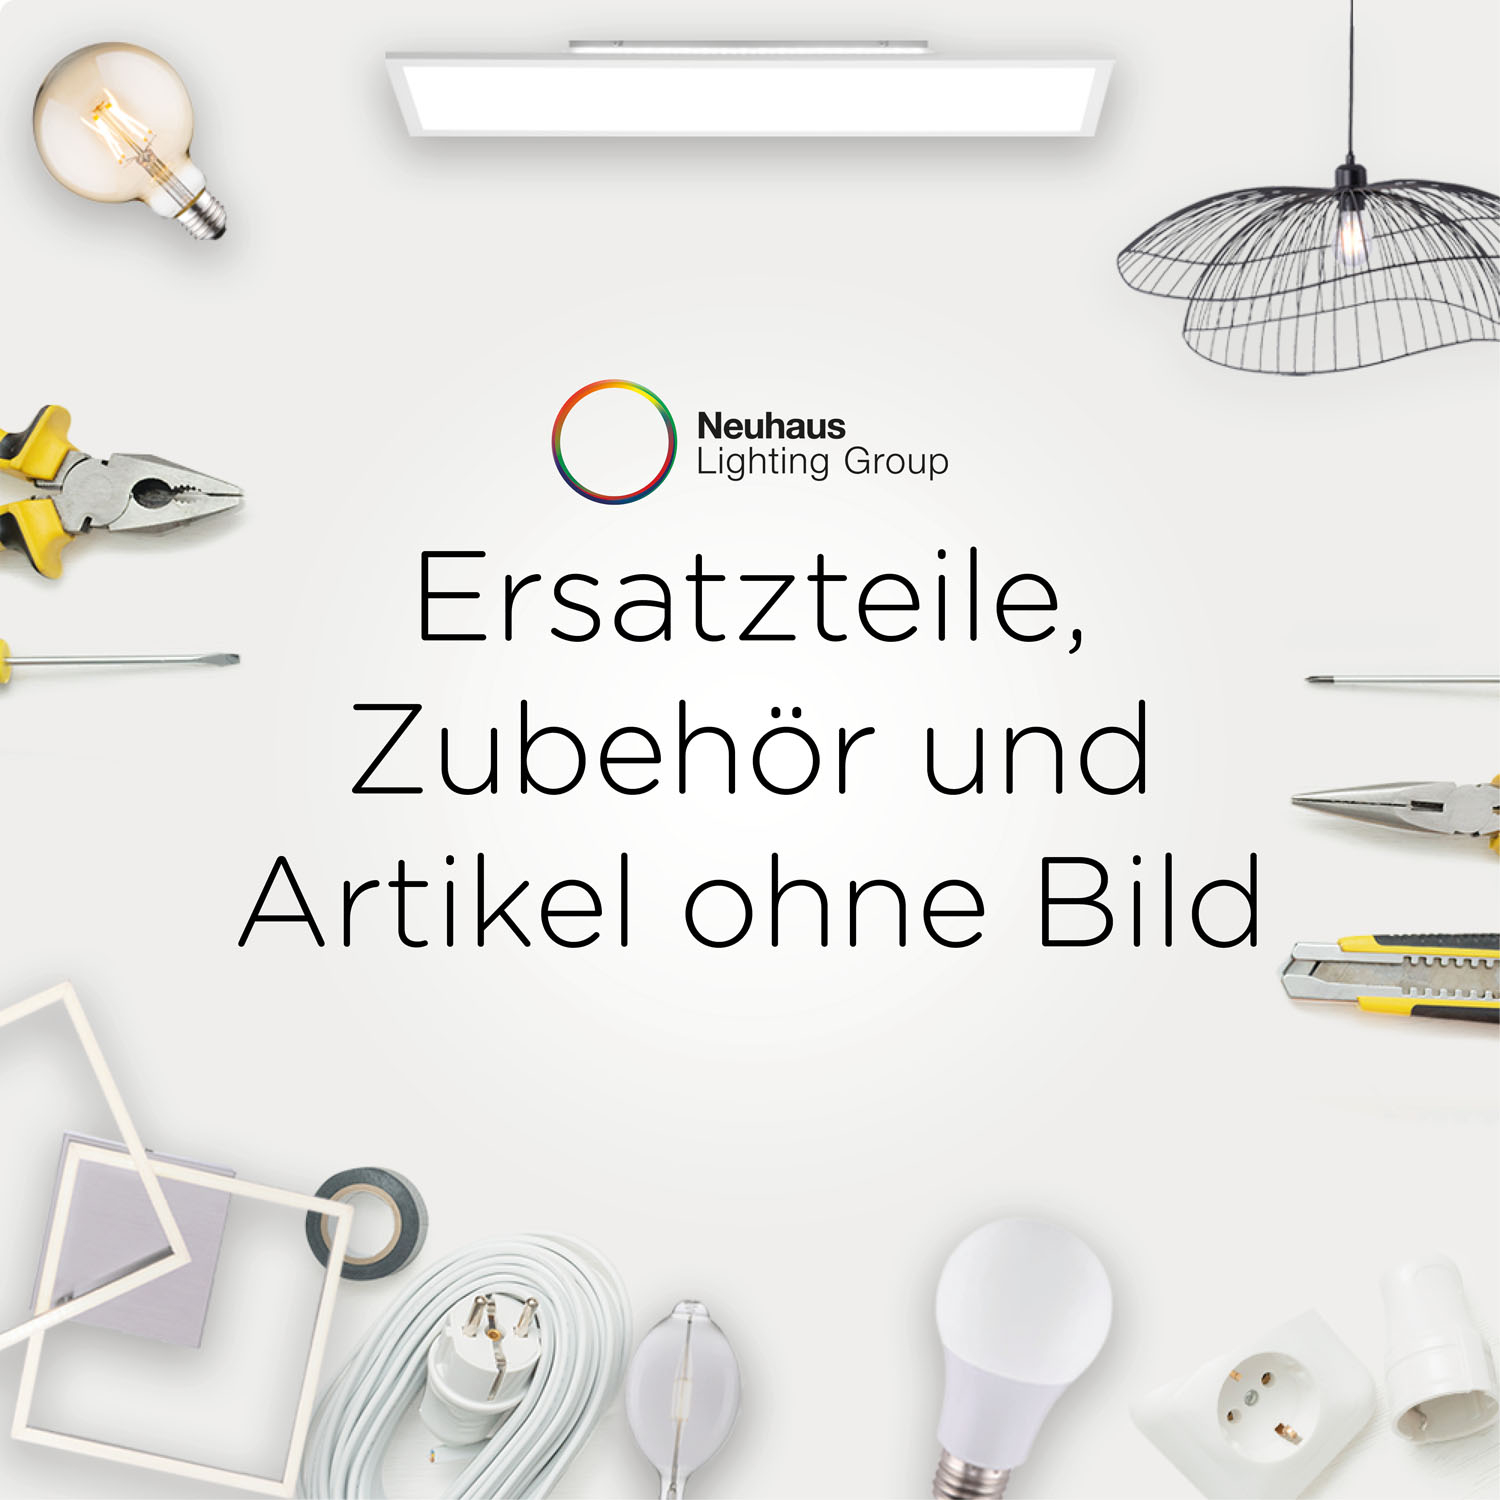 LED Pendelleuchte, Smart-Home für Zigbee Gateway